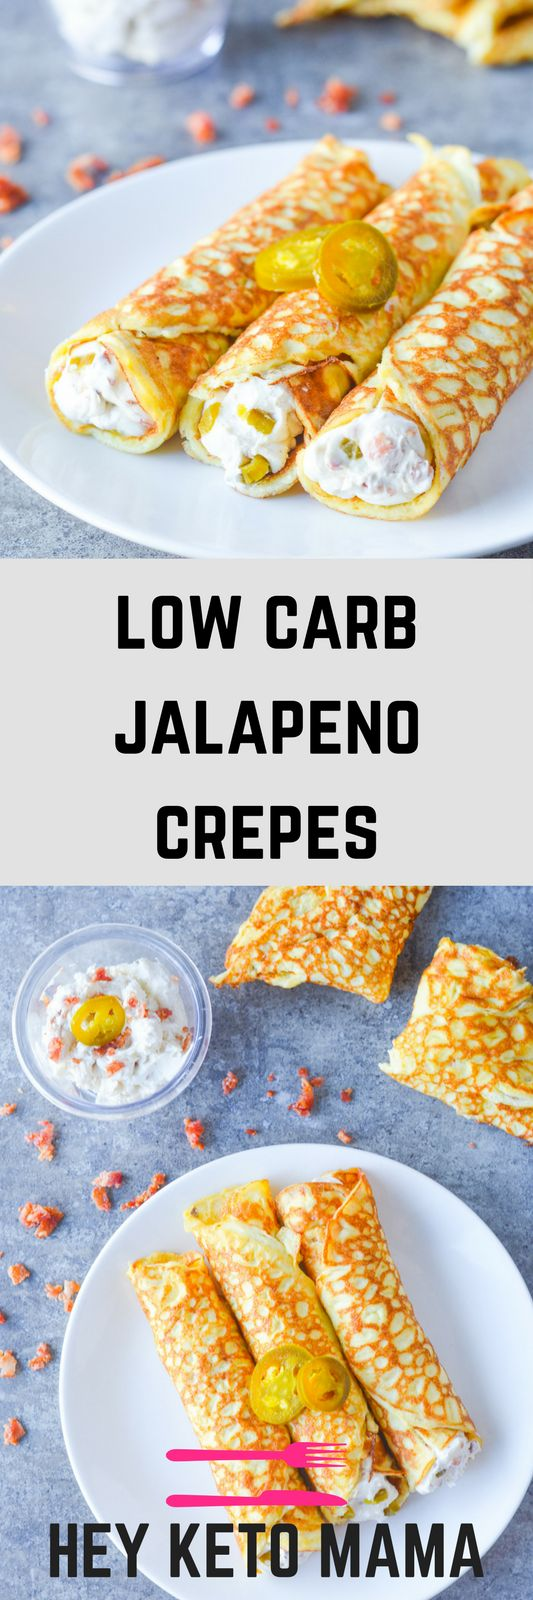 These low carb jalapeno crepes are an amazing flavor adventure--a combination of sweet, savory AND spicy!   heyketomama.com